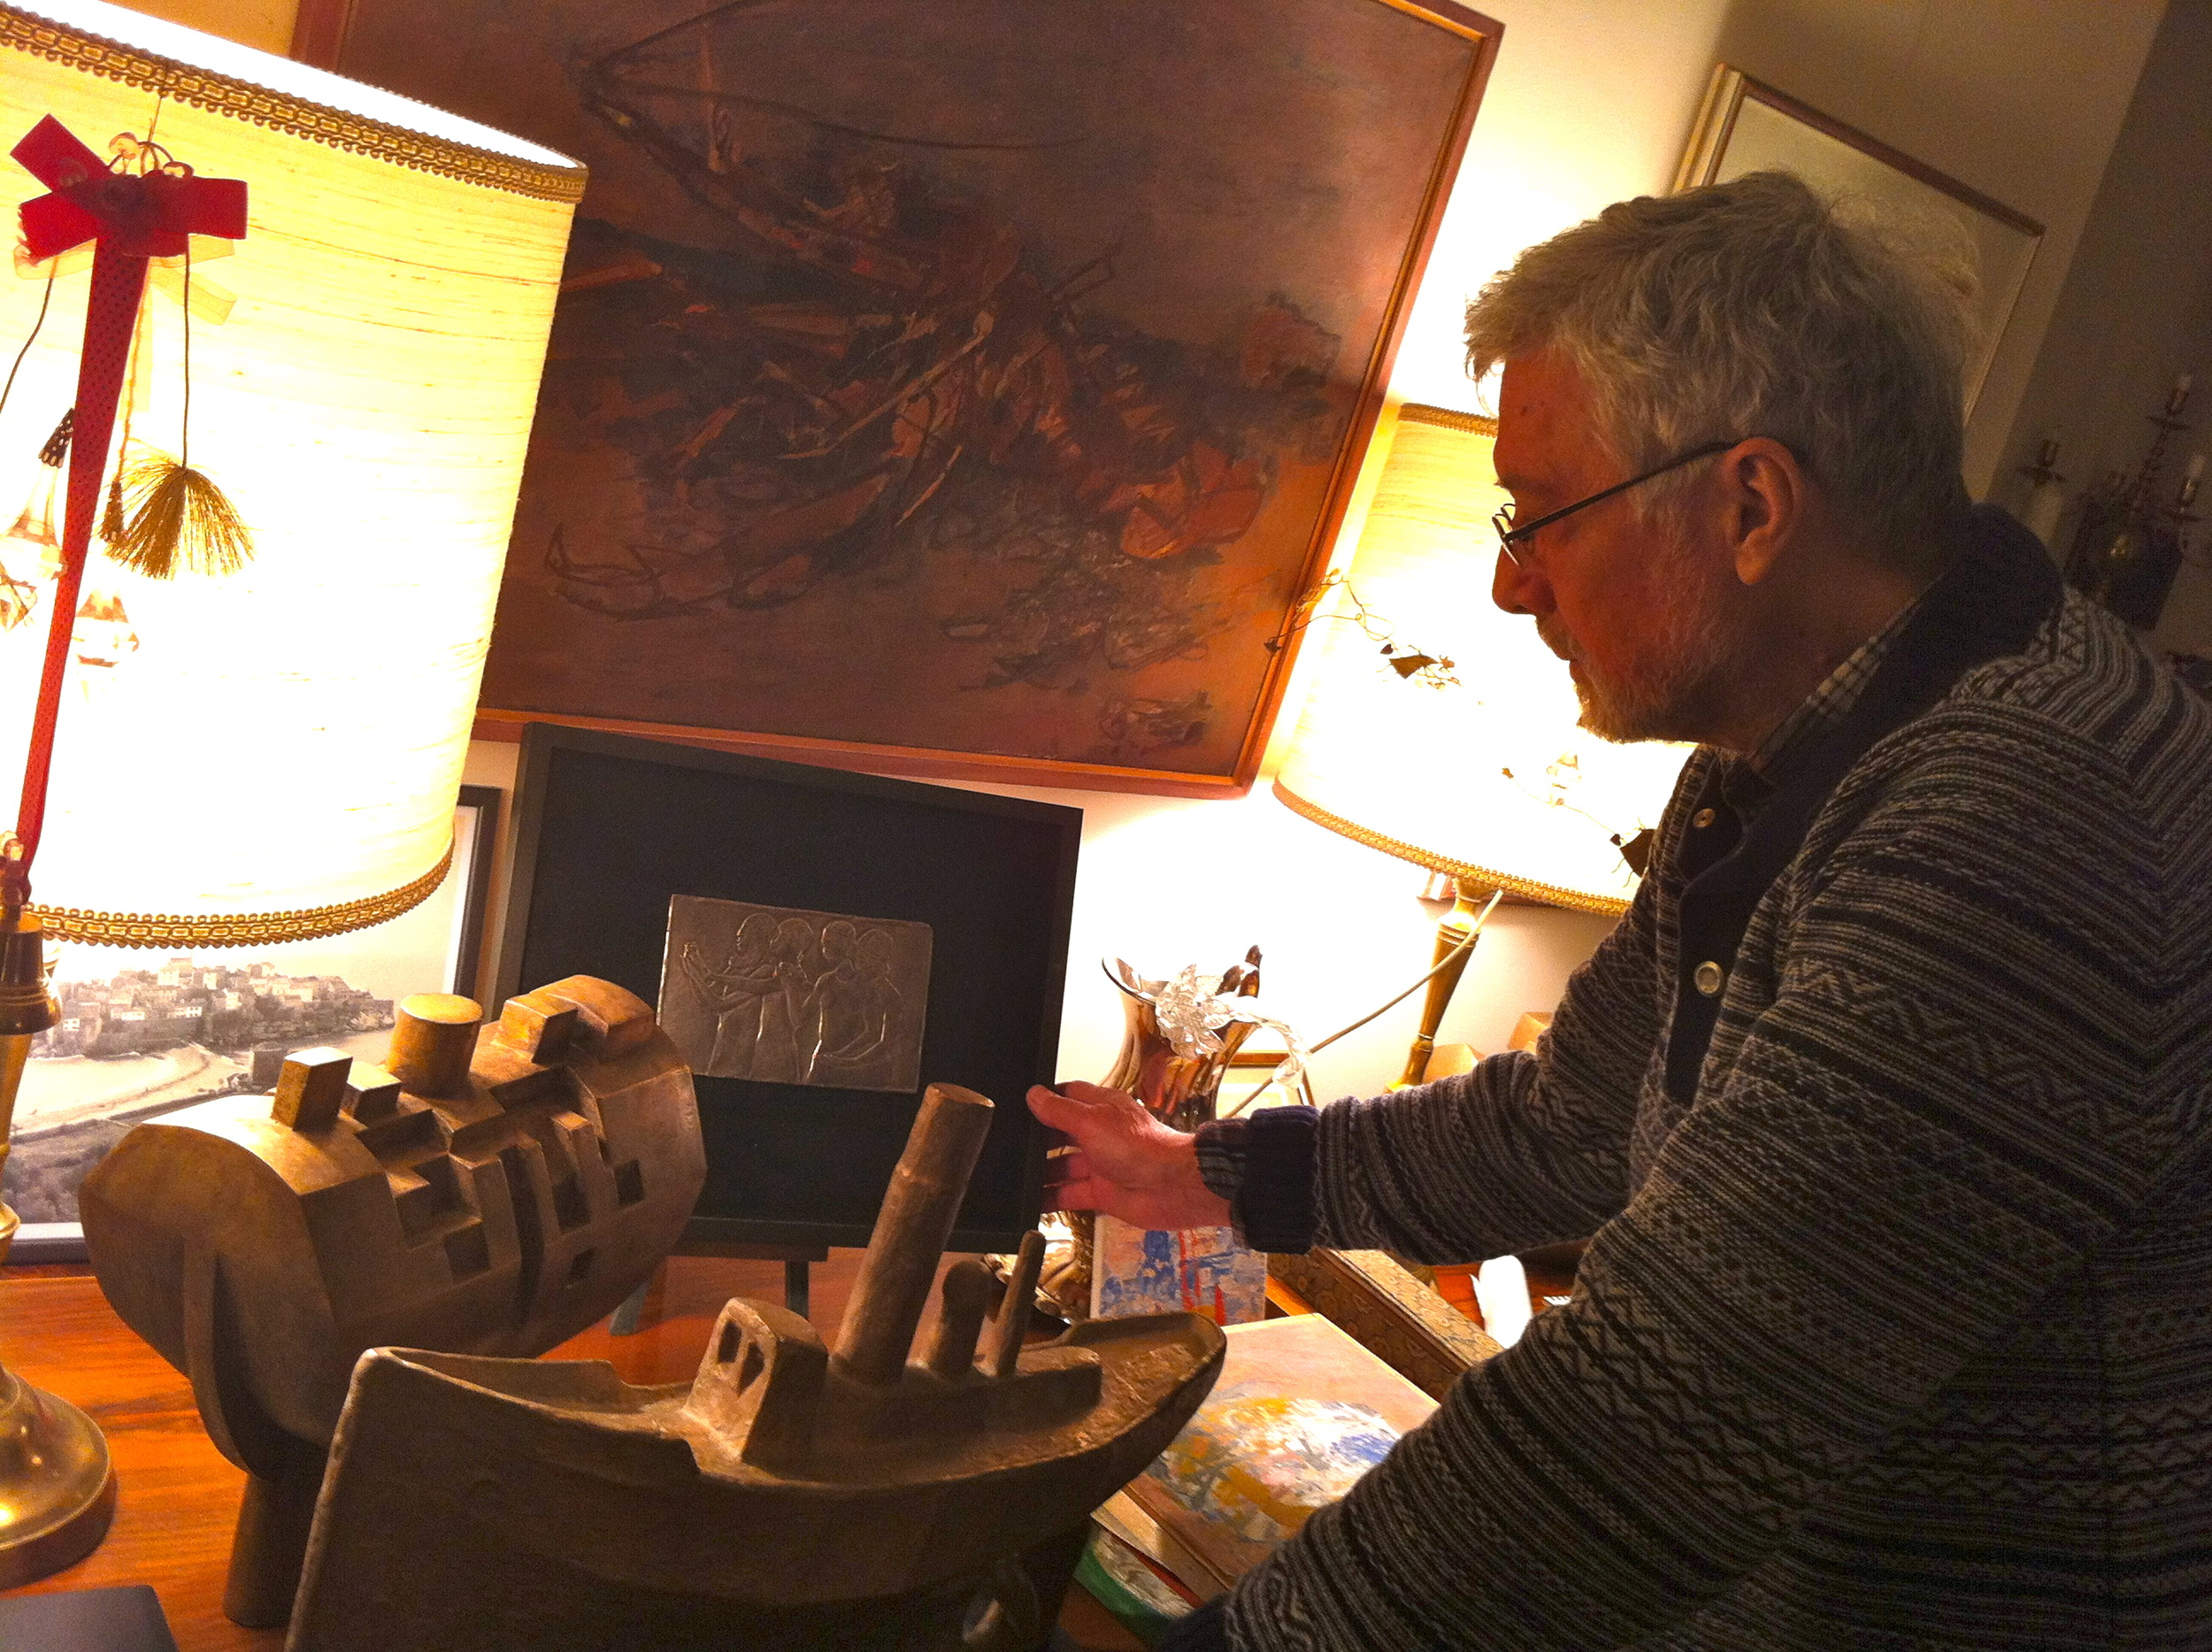 """Cousin / Sculptor and Artist Nikola-Kolja Milunović showed me his studio and drew a free hand """"family tree"""" ...to be filled in at a later date TBD!"""